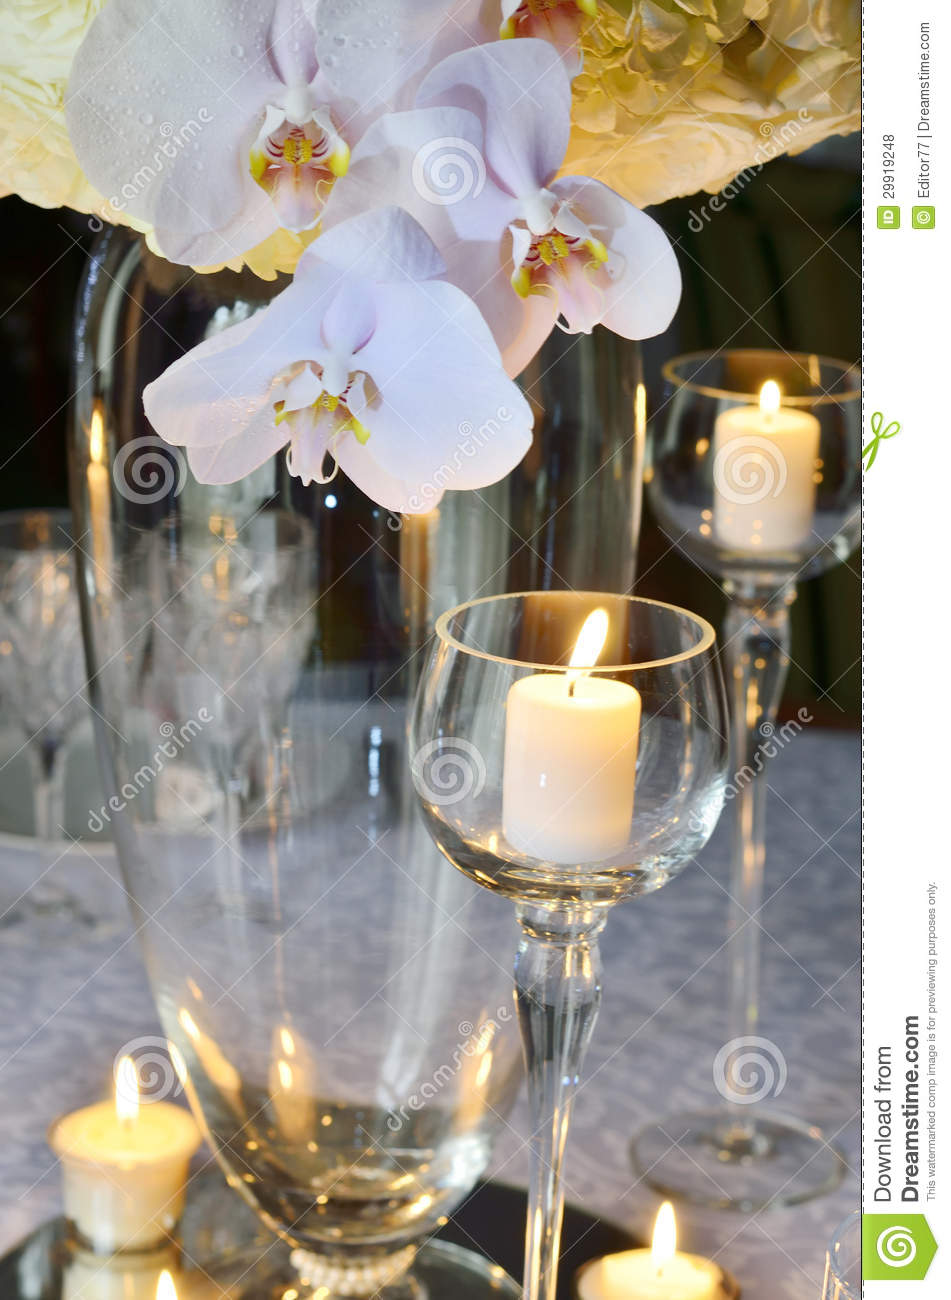 6 Chair Dining Table Wedding Table Decoration Stock Photo. Image Of Drink